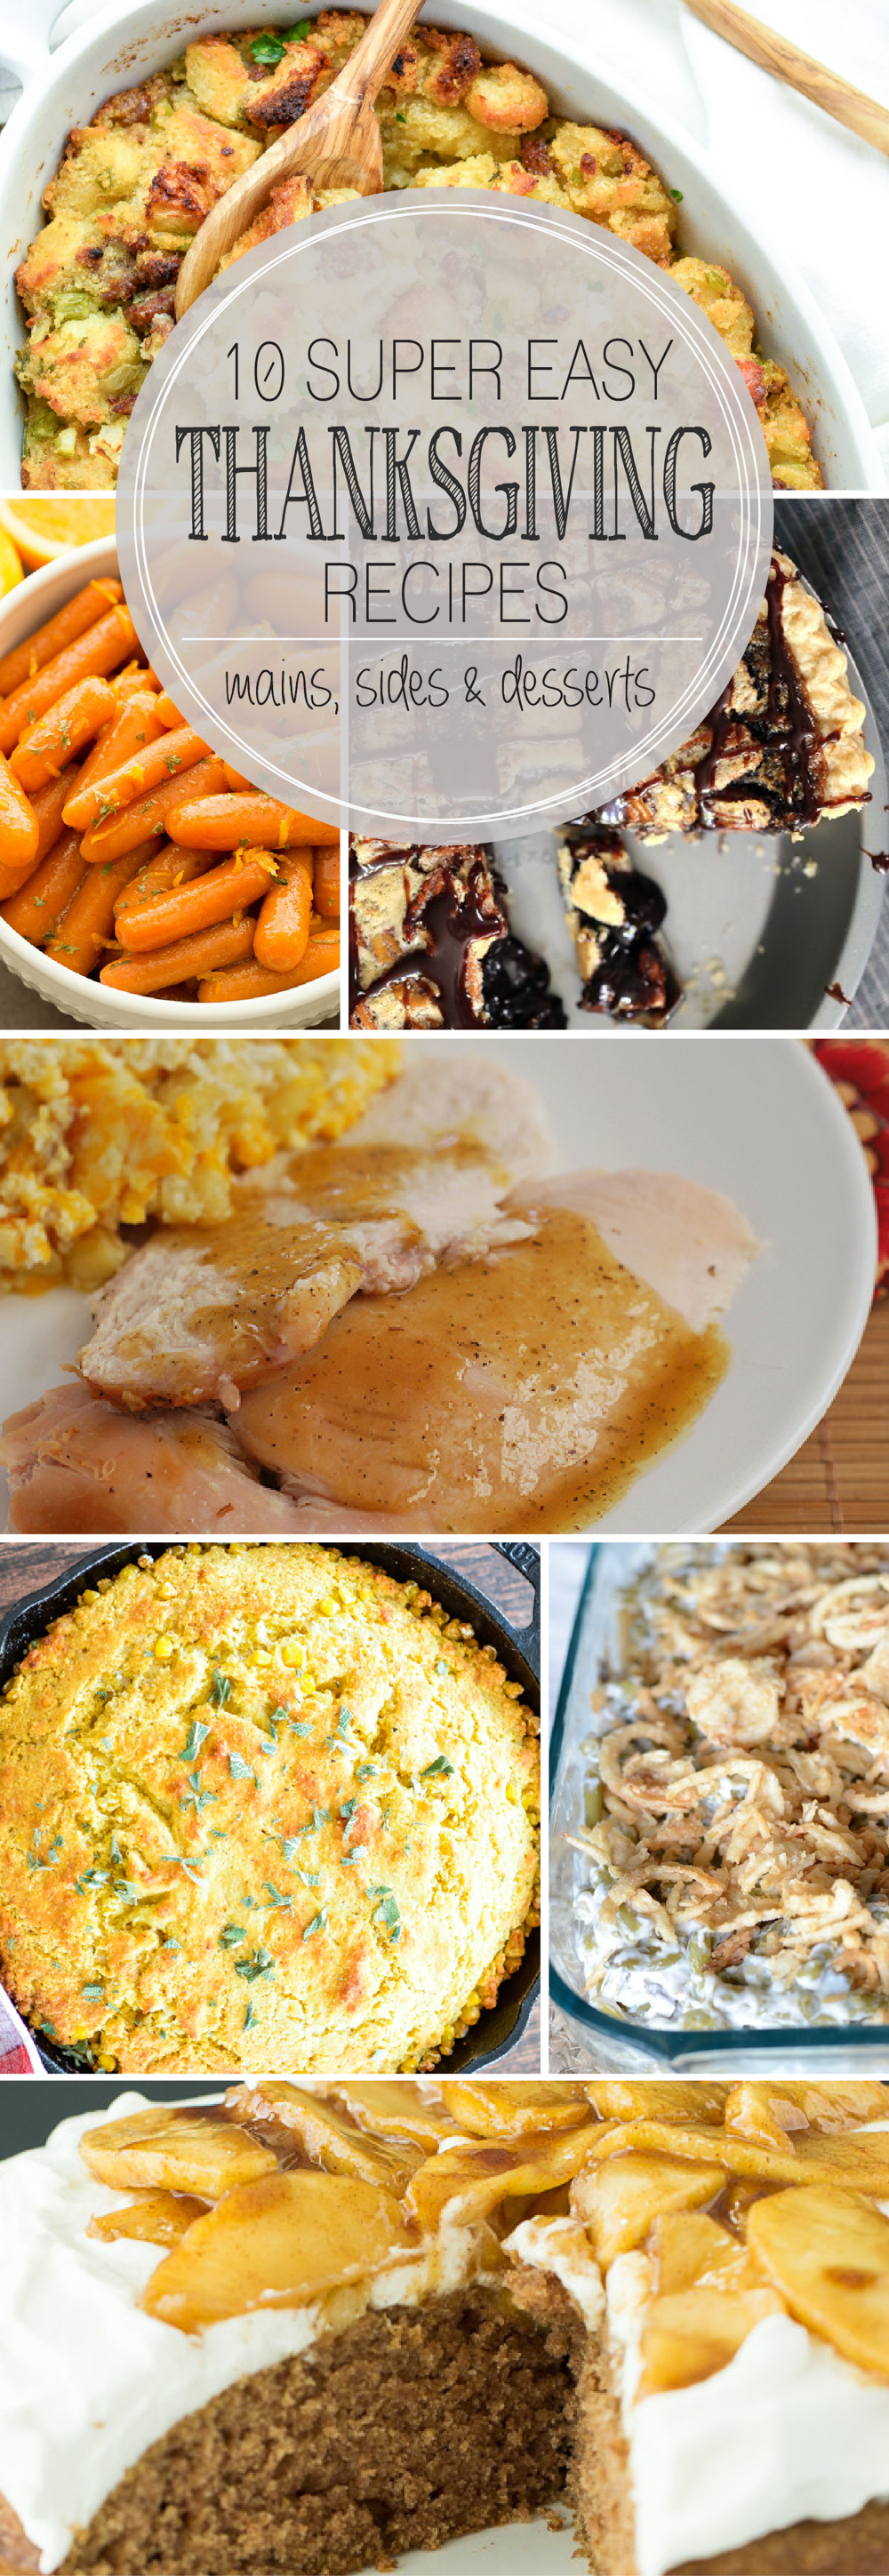 10+ Super Easy Thanksgiving Recipes